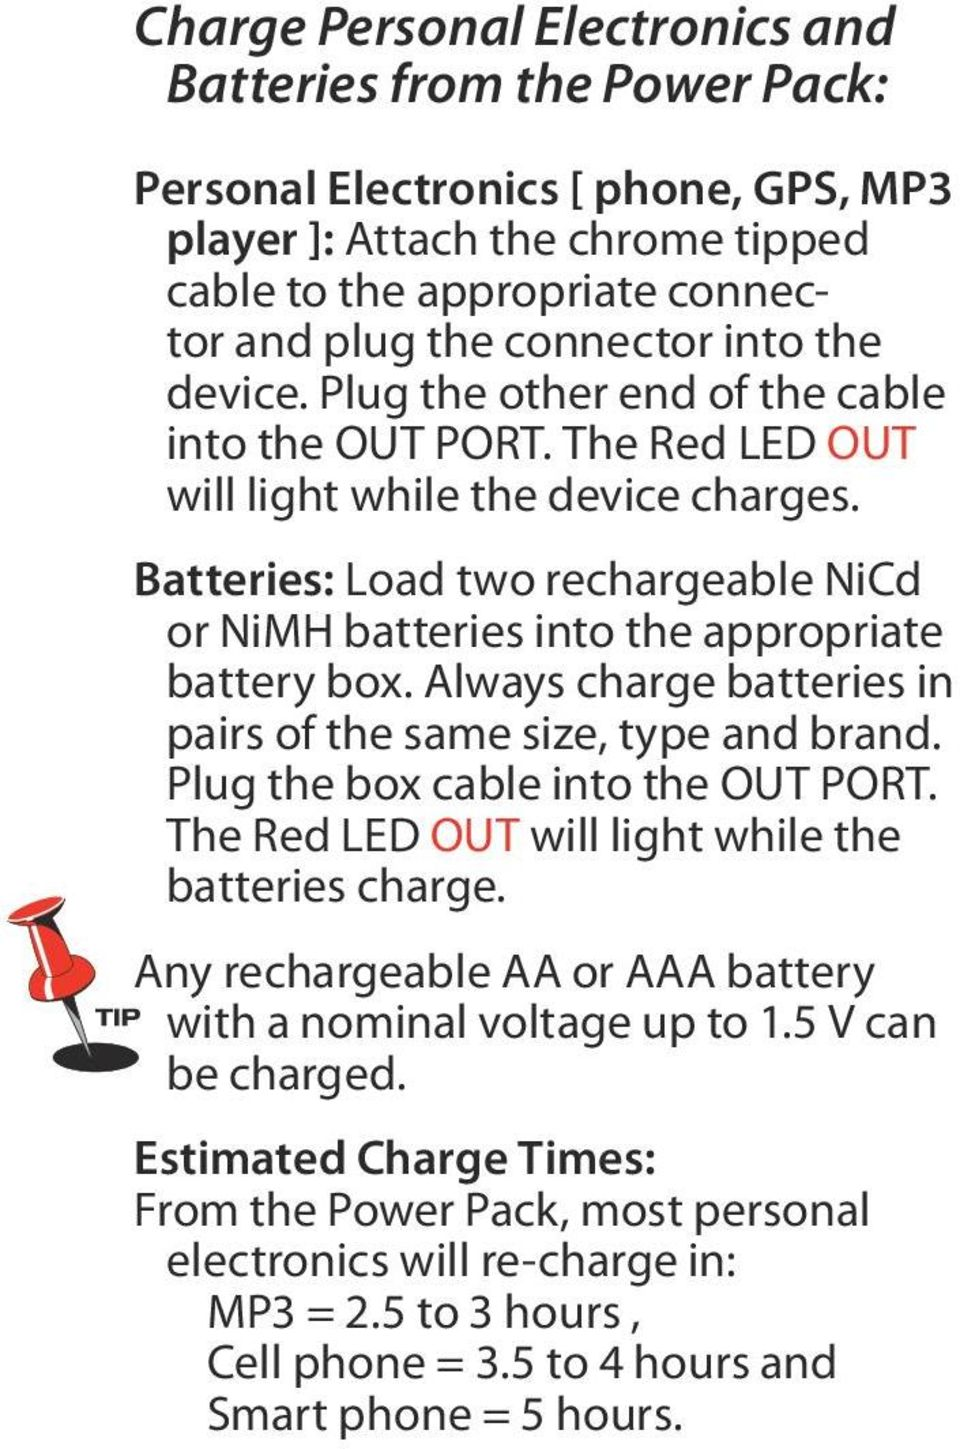 Batteries: Load two rechargeable NiCd or NiMH batteries into the appropriate battery box. Always charge batteries in pairs of the same size, type and brand. Plug the box cable into the OUT PORT.